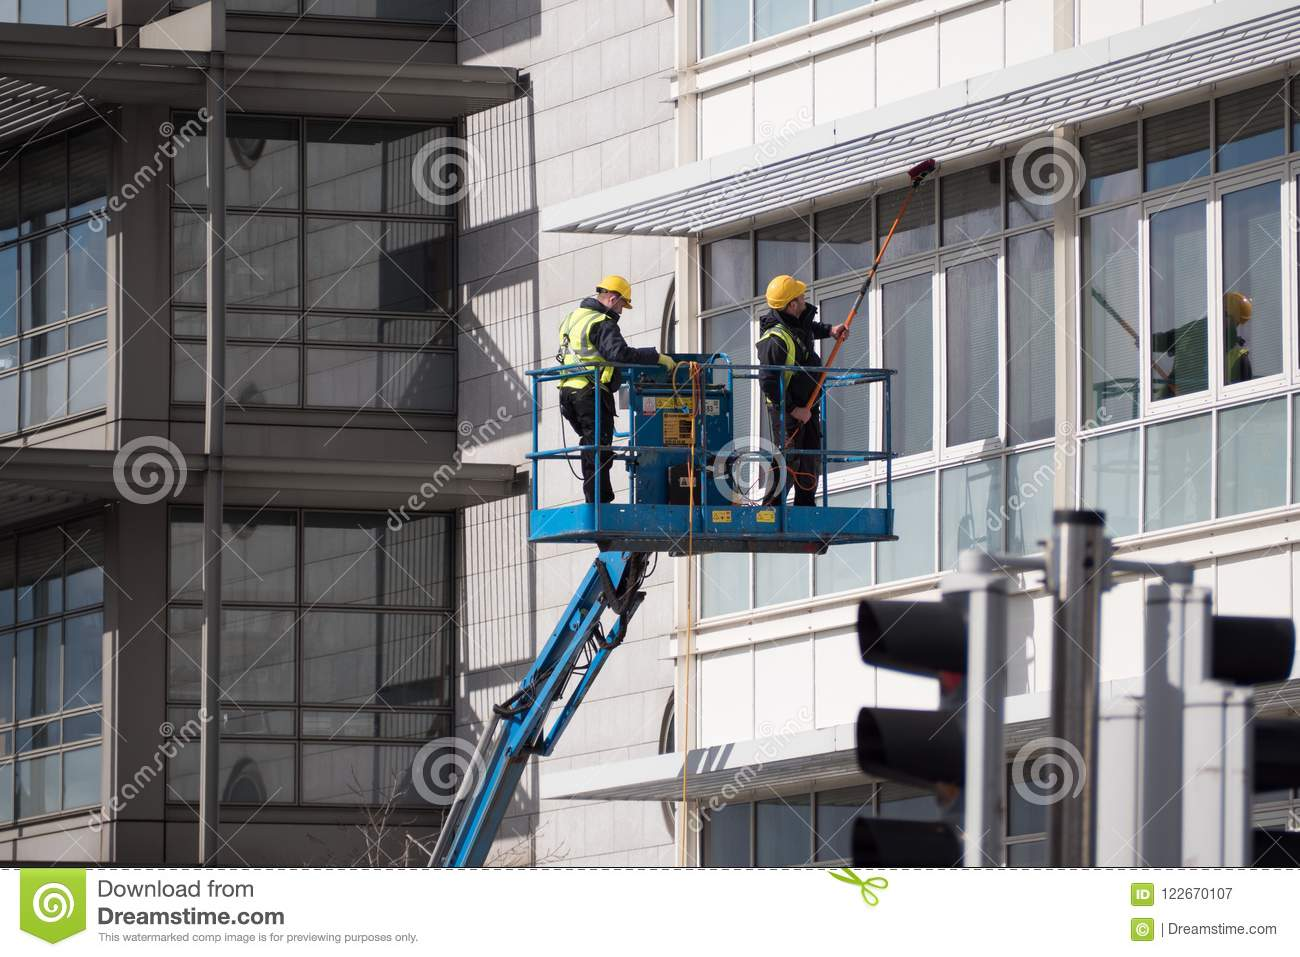 Two Men In Hard Hats Cleaning Tall Building Windows Using Hydraulic